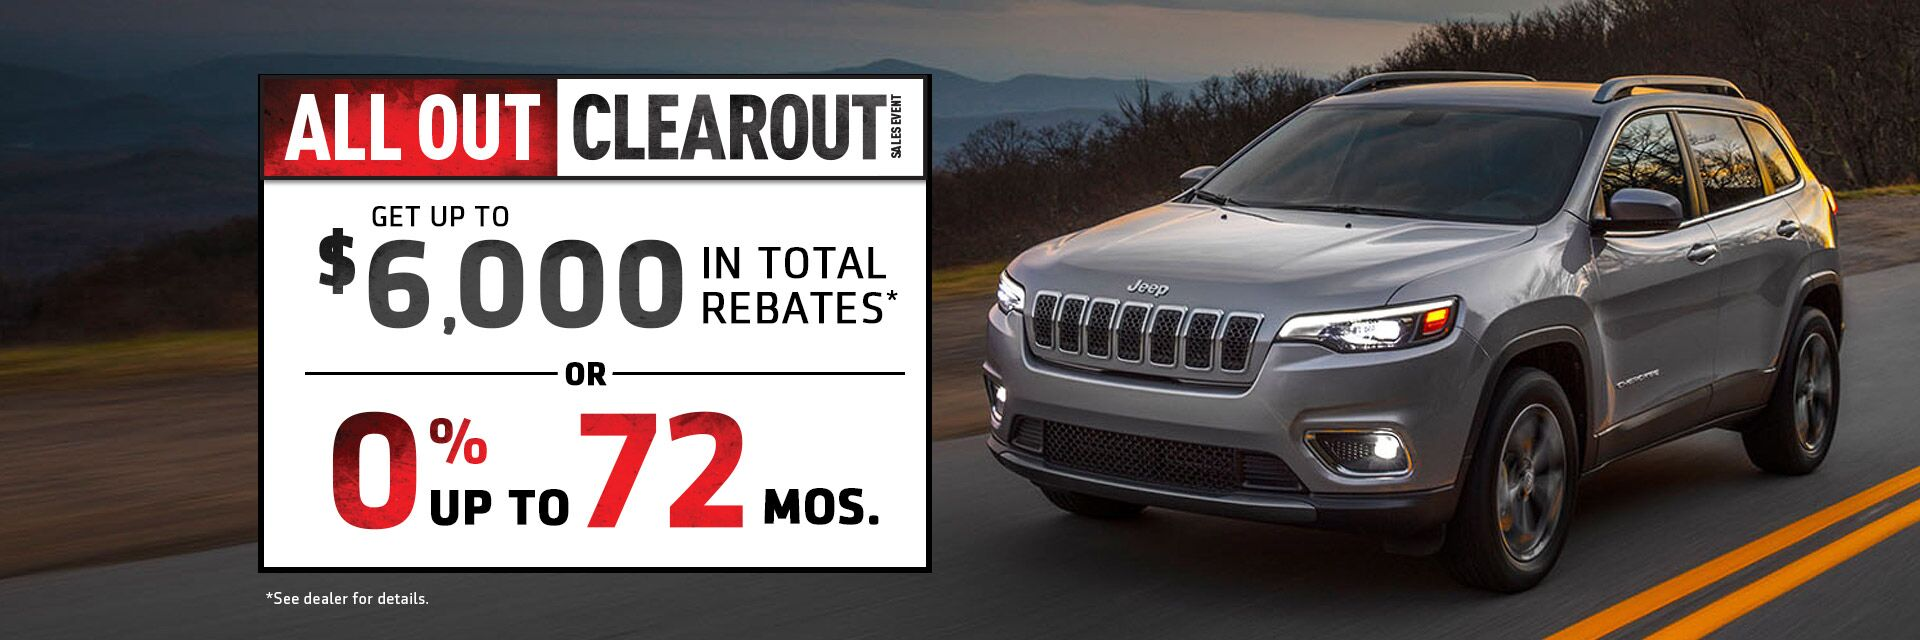 All Out Clearout Sales Event at Stony Plain Chrysler Jeep Cherokee